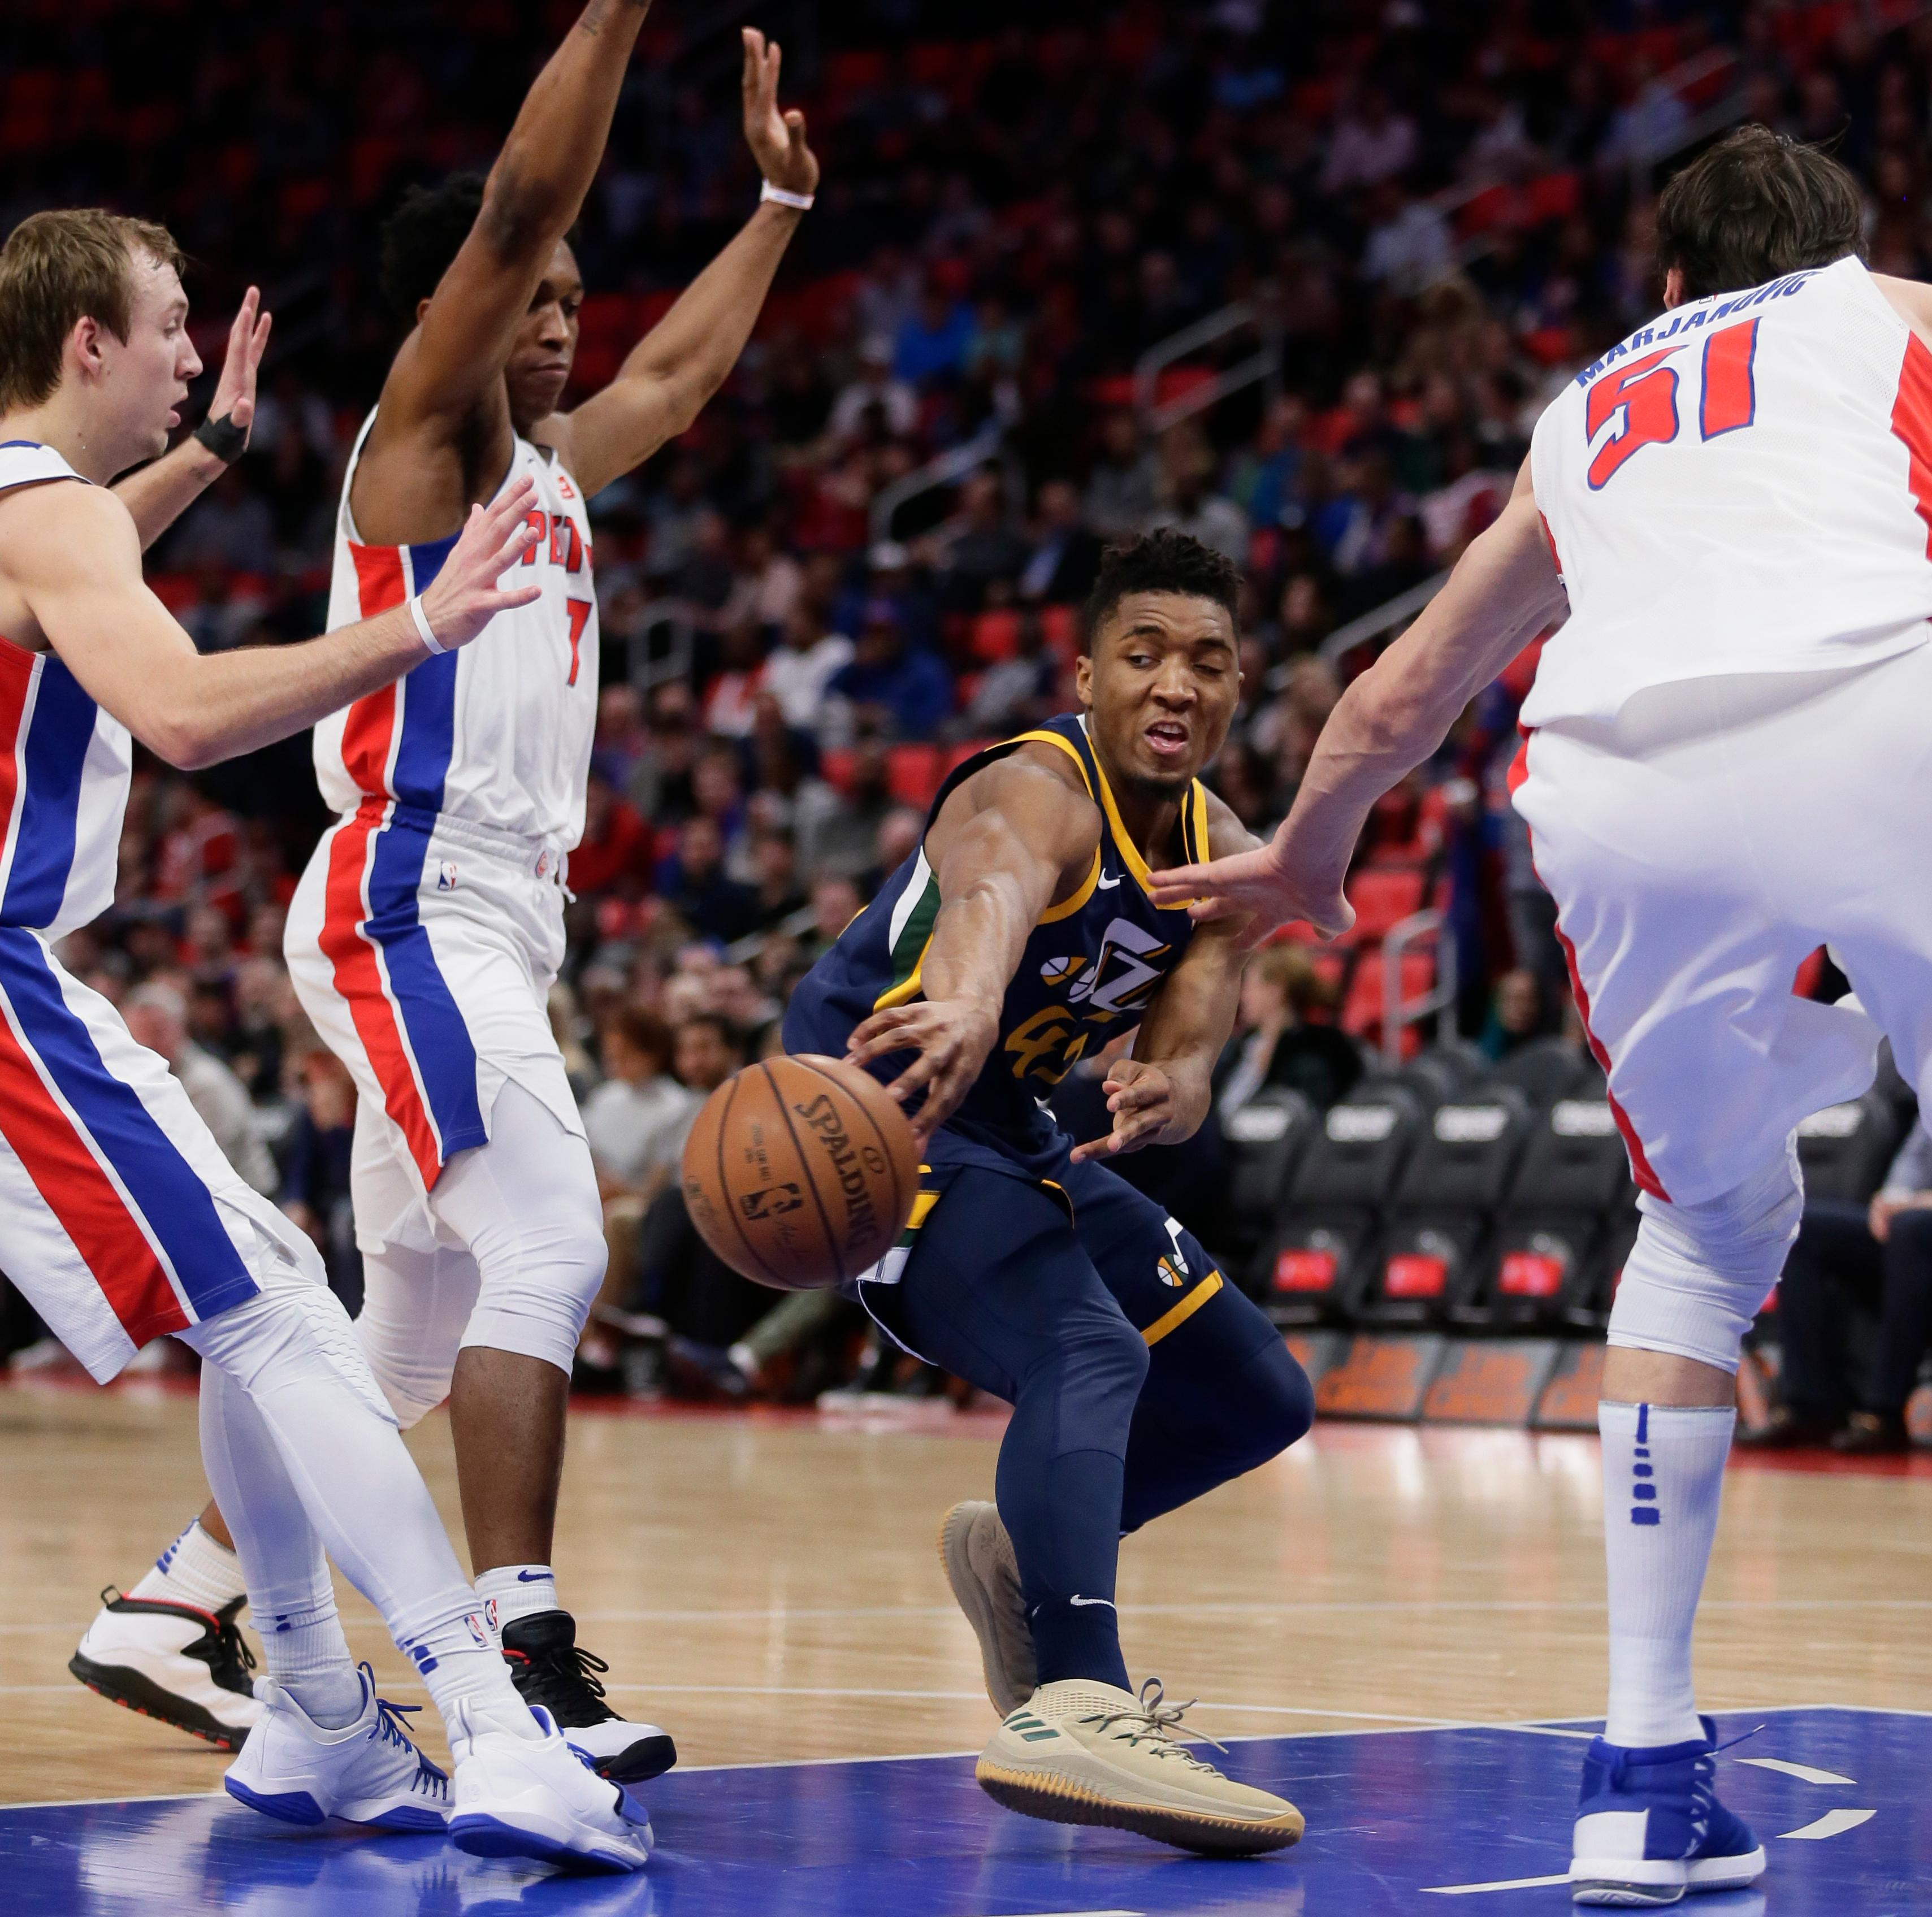 Utah Jazz guard Donovan Mitchell (45) passes the ball against Detroit Pistons guard Luke Kennard, left, forward Stanley Johnson and center Boban Marjanovic (51) during the first half of an NBA basketball game Wednesday, Jan. 24, 2018, in Detroit. (AP Photo/Duane Burleson)